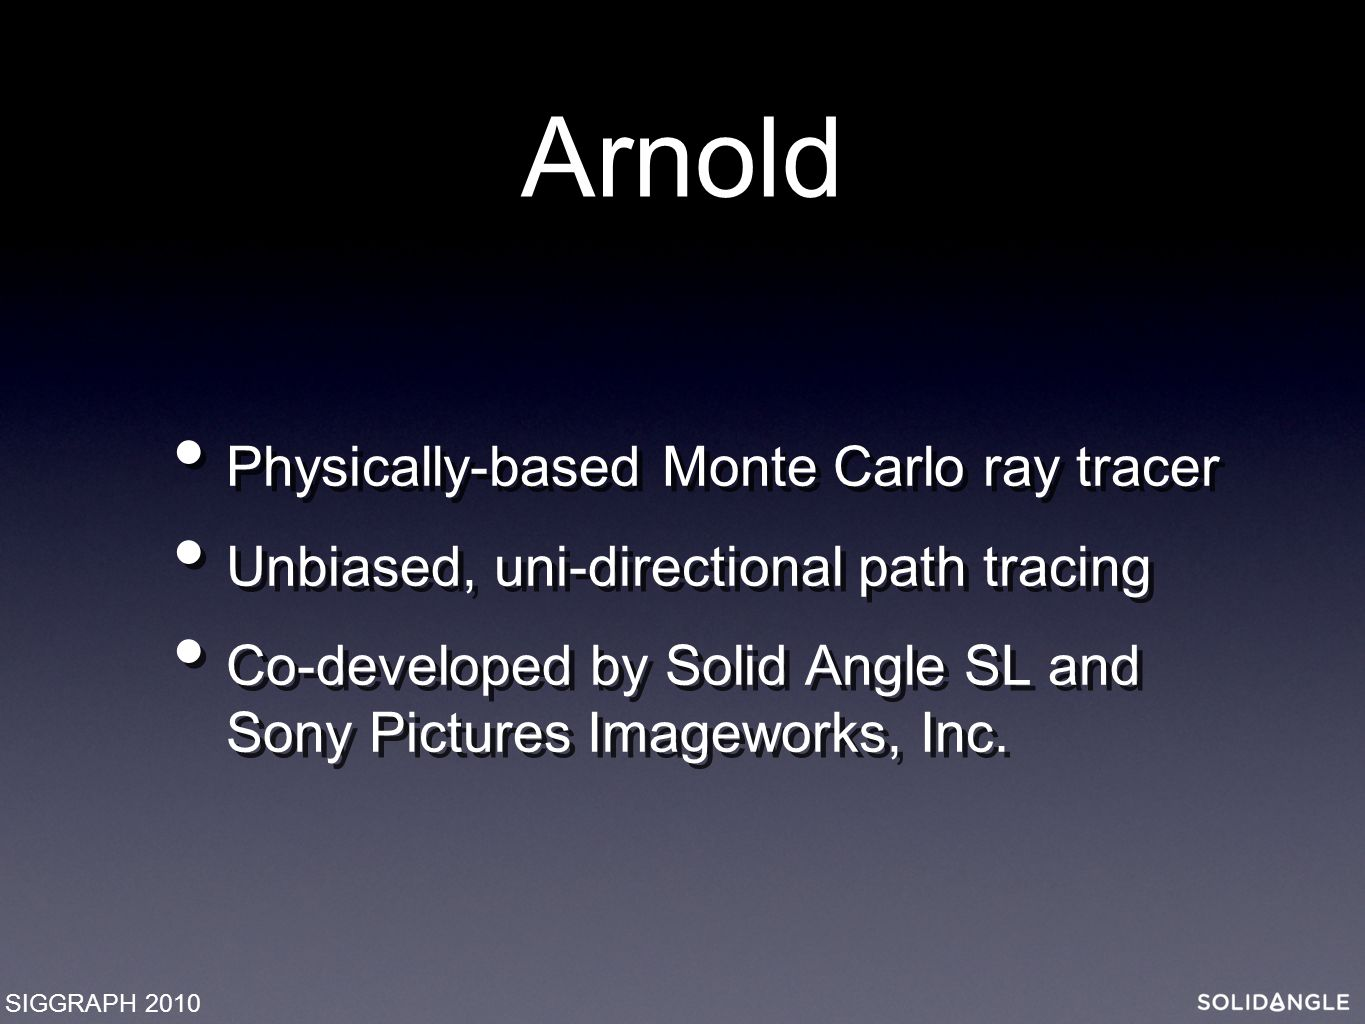 Arnold Physically-based Monte Carlo ray tracer Unbiased, uni-directional path tracing Co-developed by Solid Angle SL and Sony Pictures Imageworks, Inc.